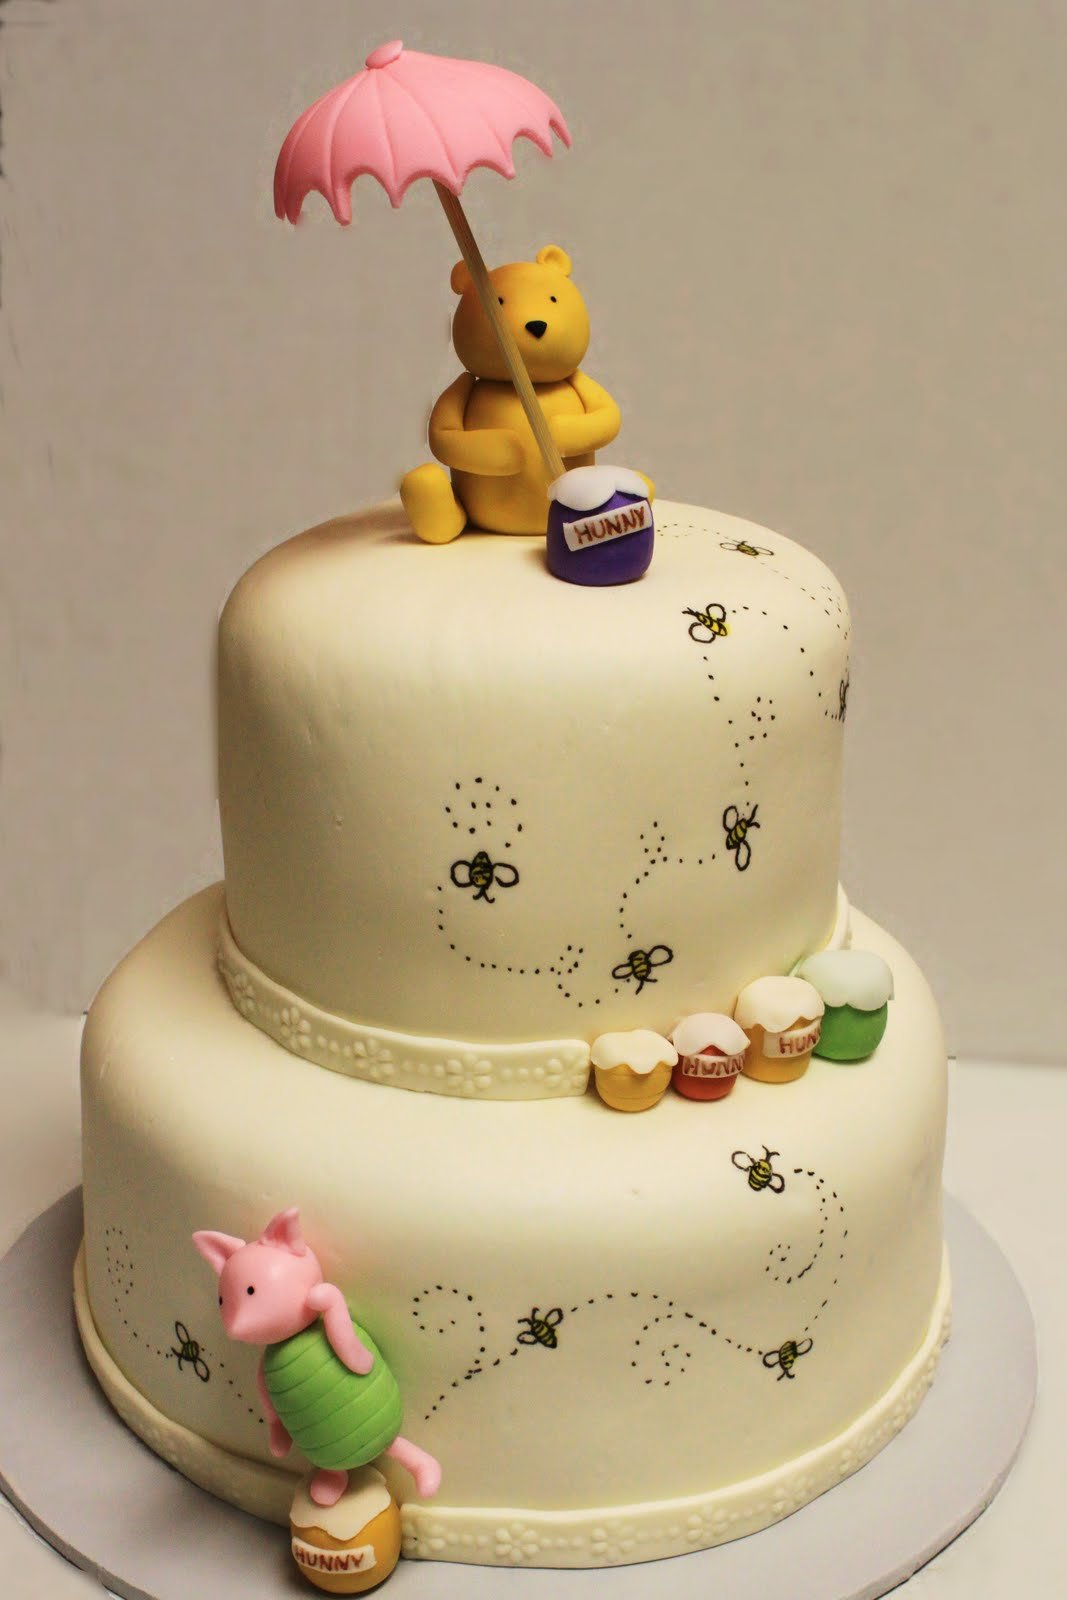 pooh cake Winnie the pooh lovers, unite a new set of adorable winnie the pooh cake toppers for baby showers and birthdays are now available featuring everyone's favorite huggable bear and his friends, you'll find a variety of playful and cute toppers for the perfect winnie the pooh cake.